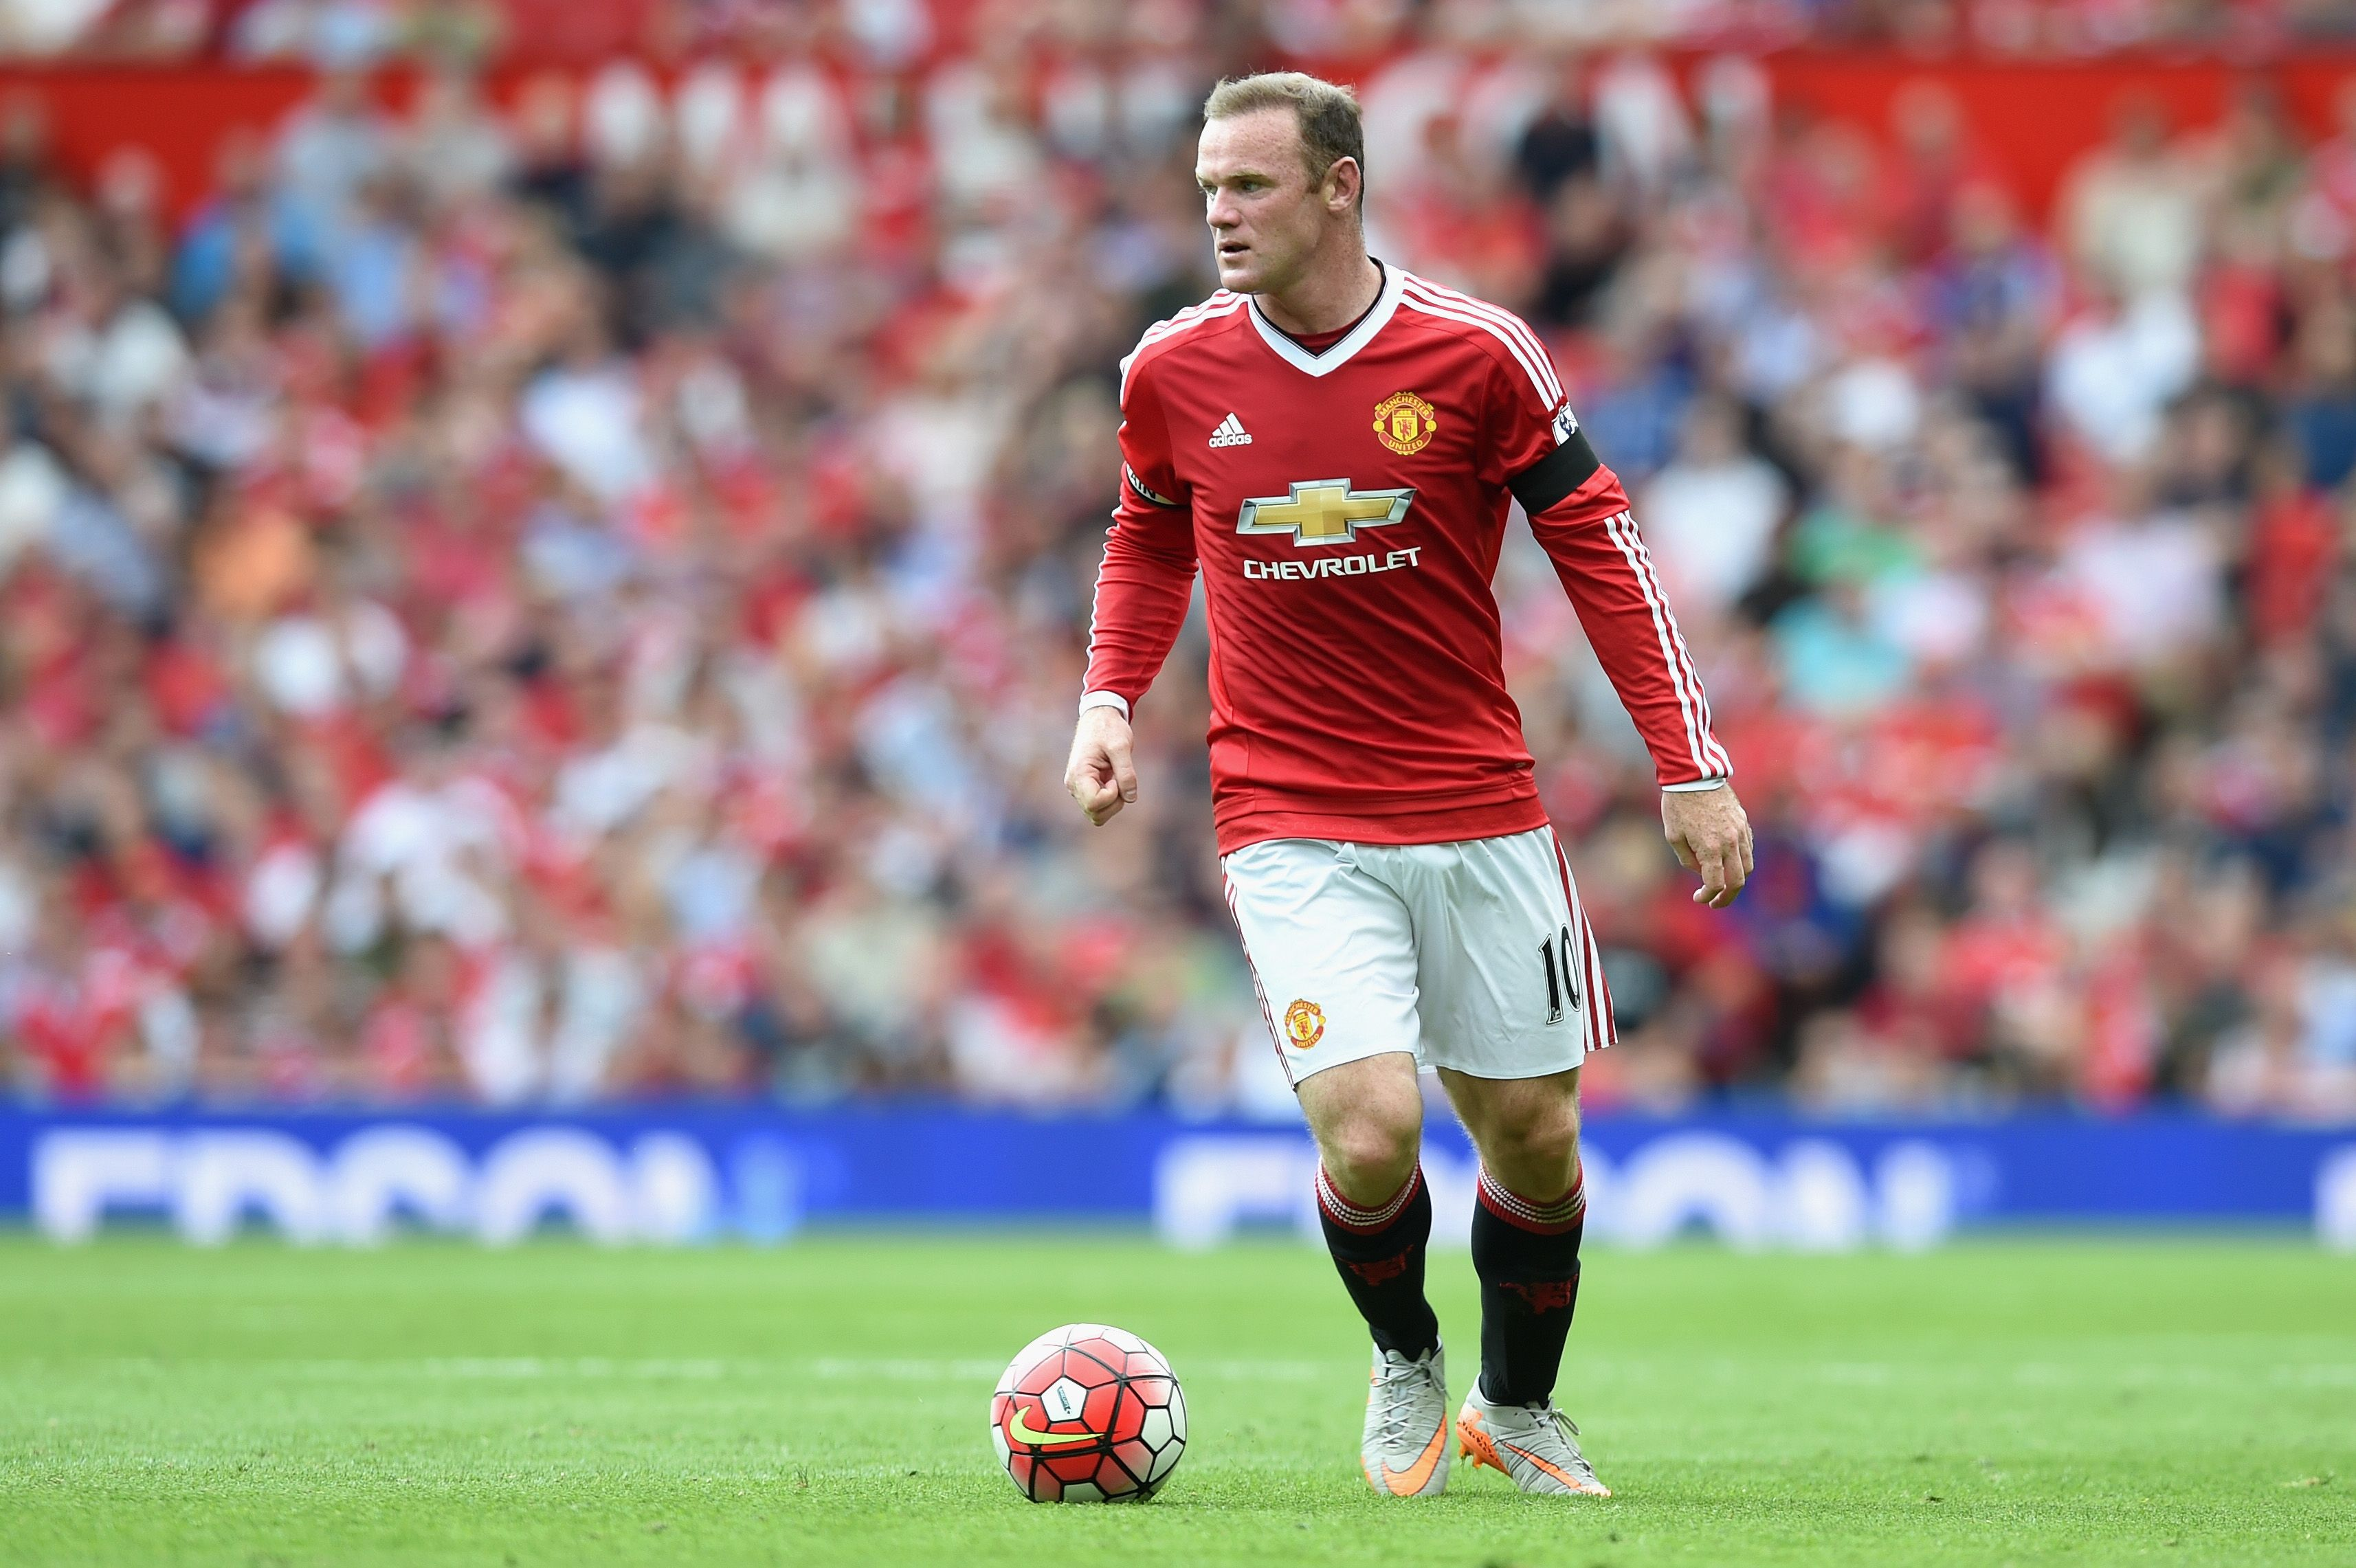 e8e21a3507c Wayne Rooney captaining United in his first adidas kit.